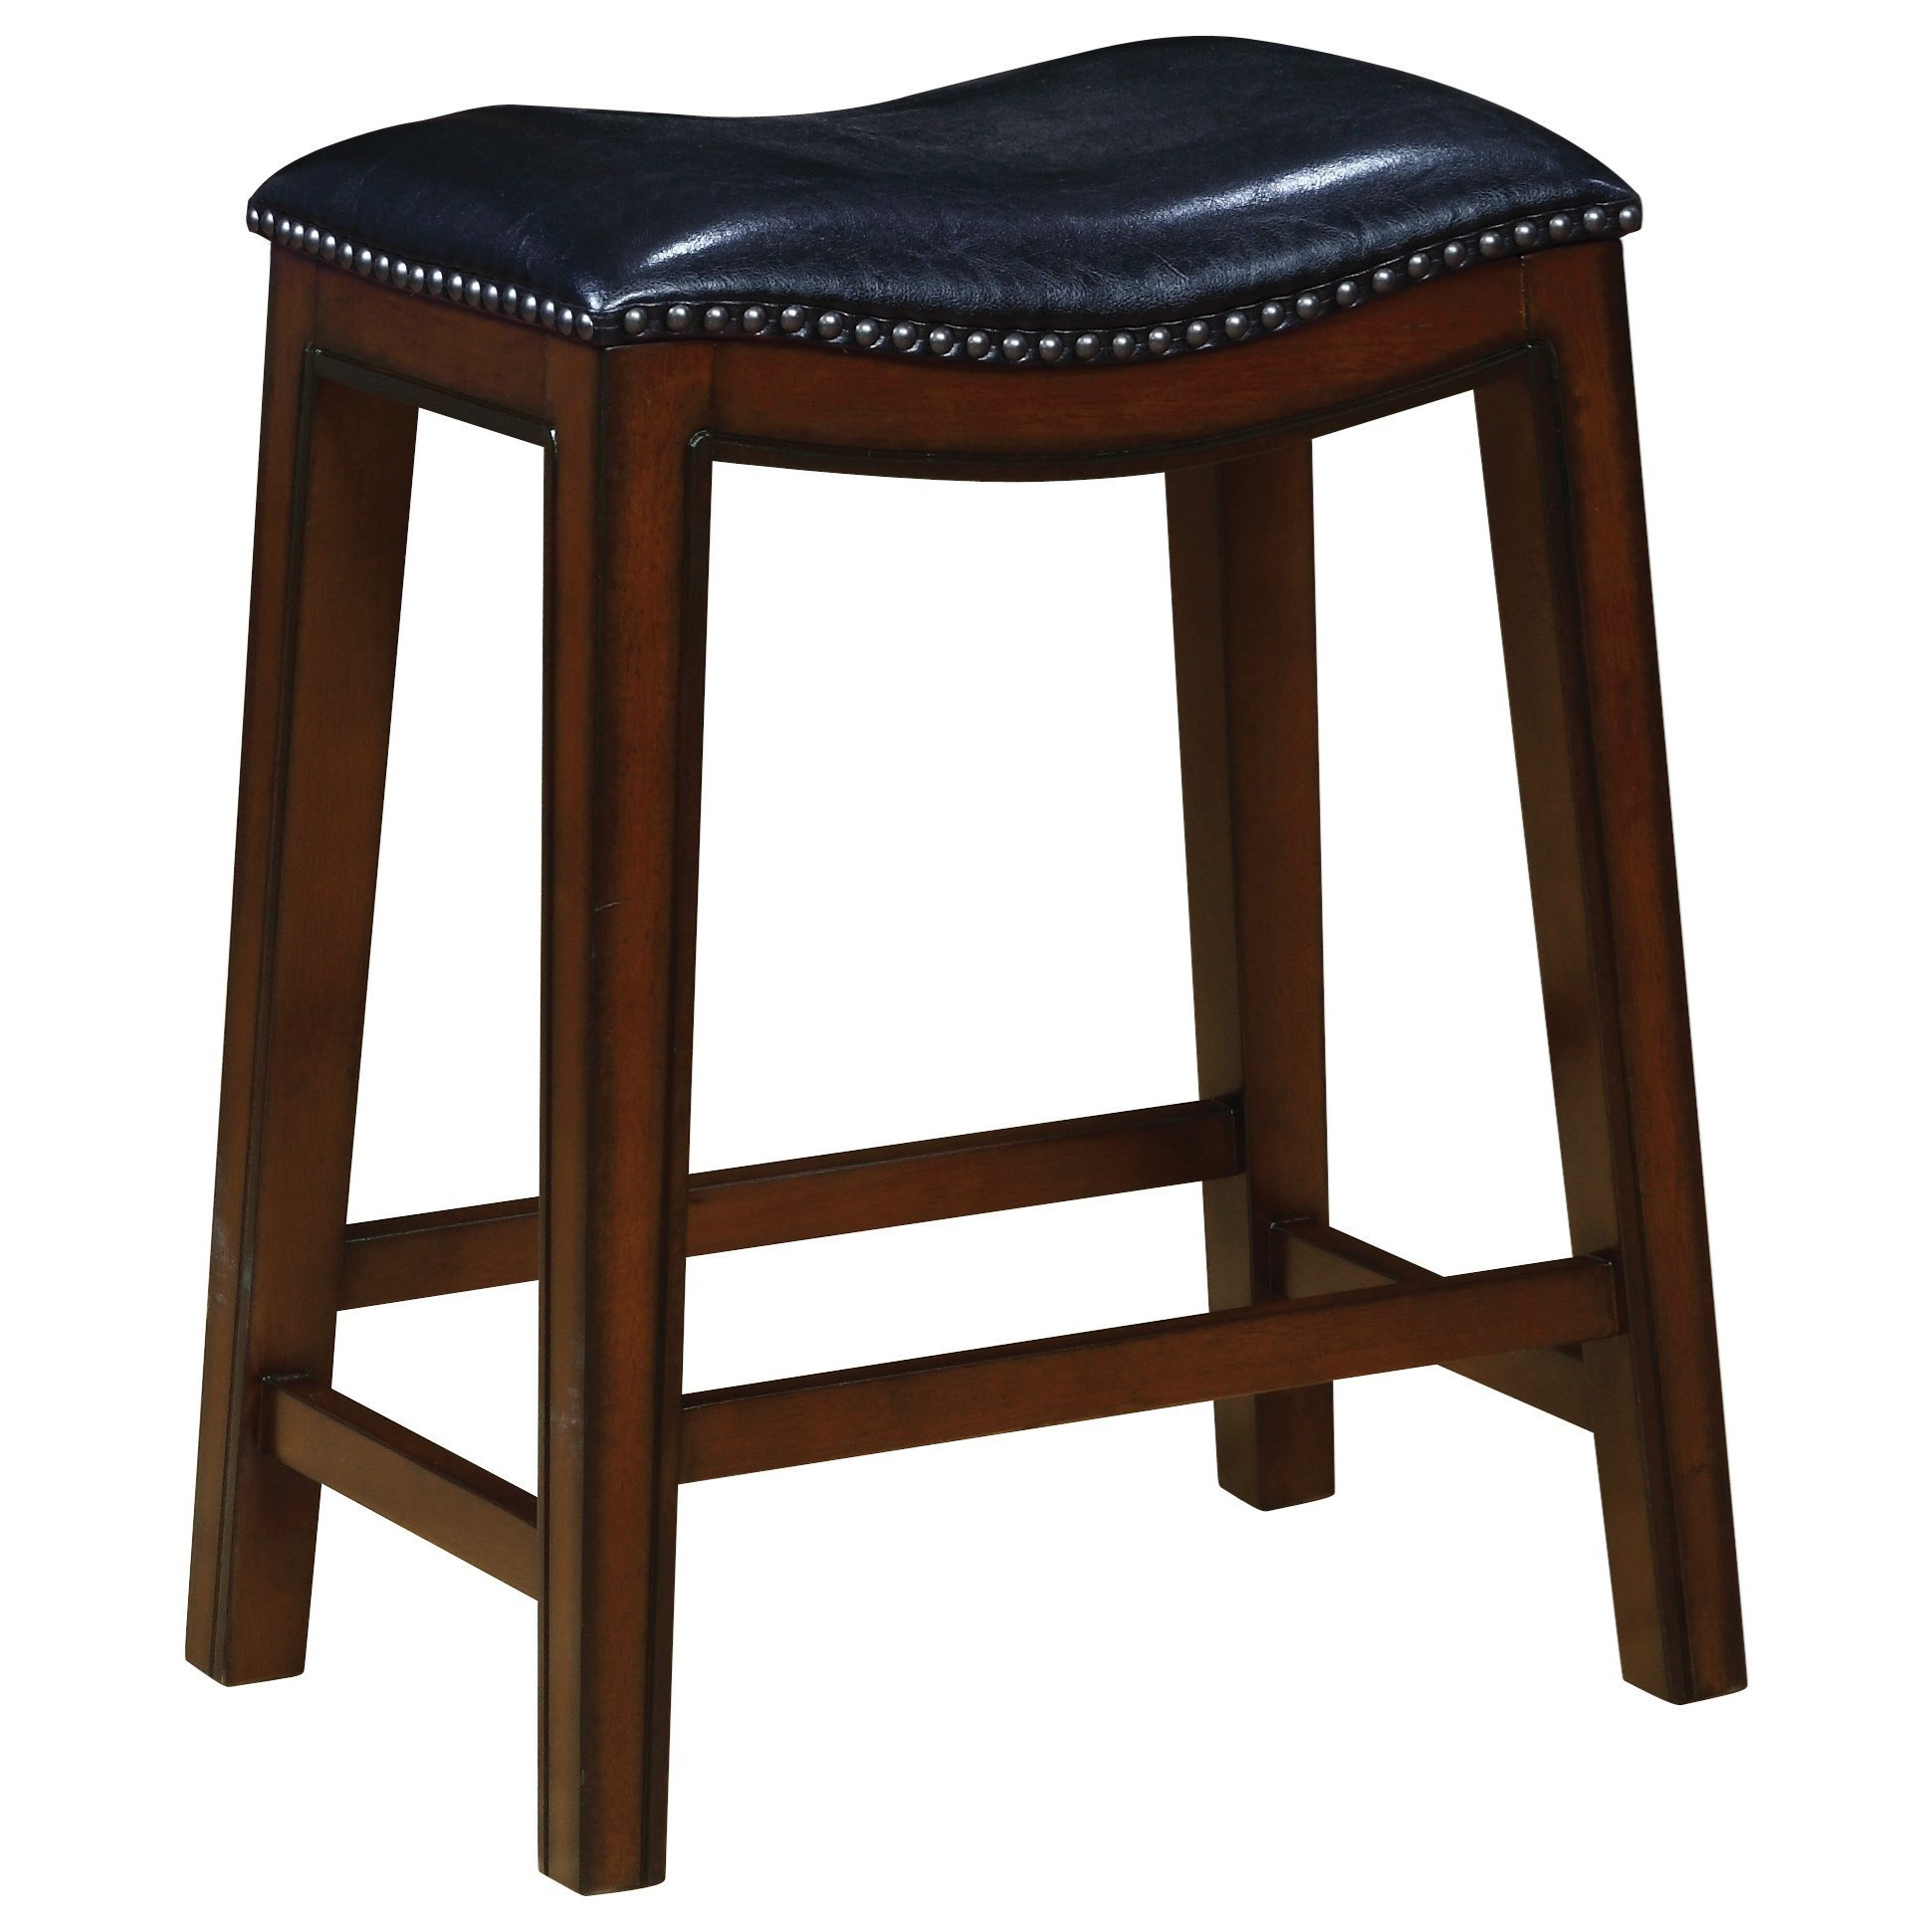 Bar Stool Chairs Dining Chairs And Bar Stools Backless Counter Height Stool With Nailhead Accents By Coaster At Miskelly Furniture